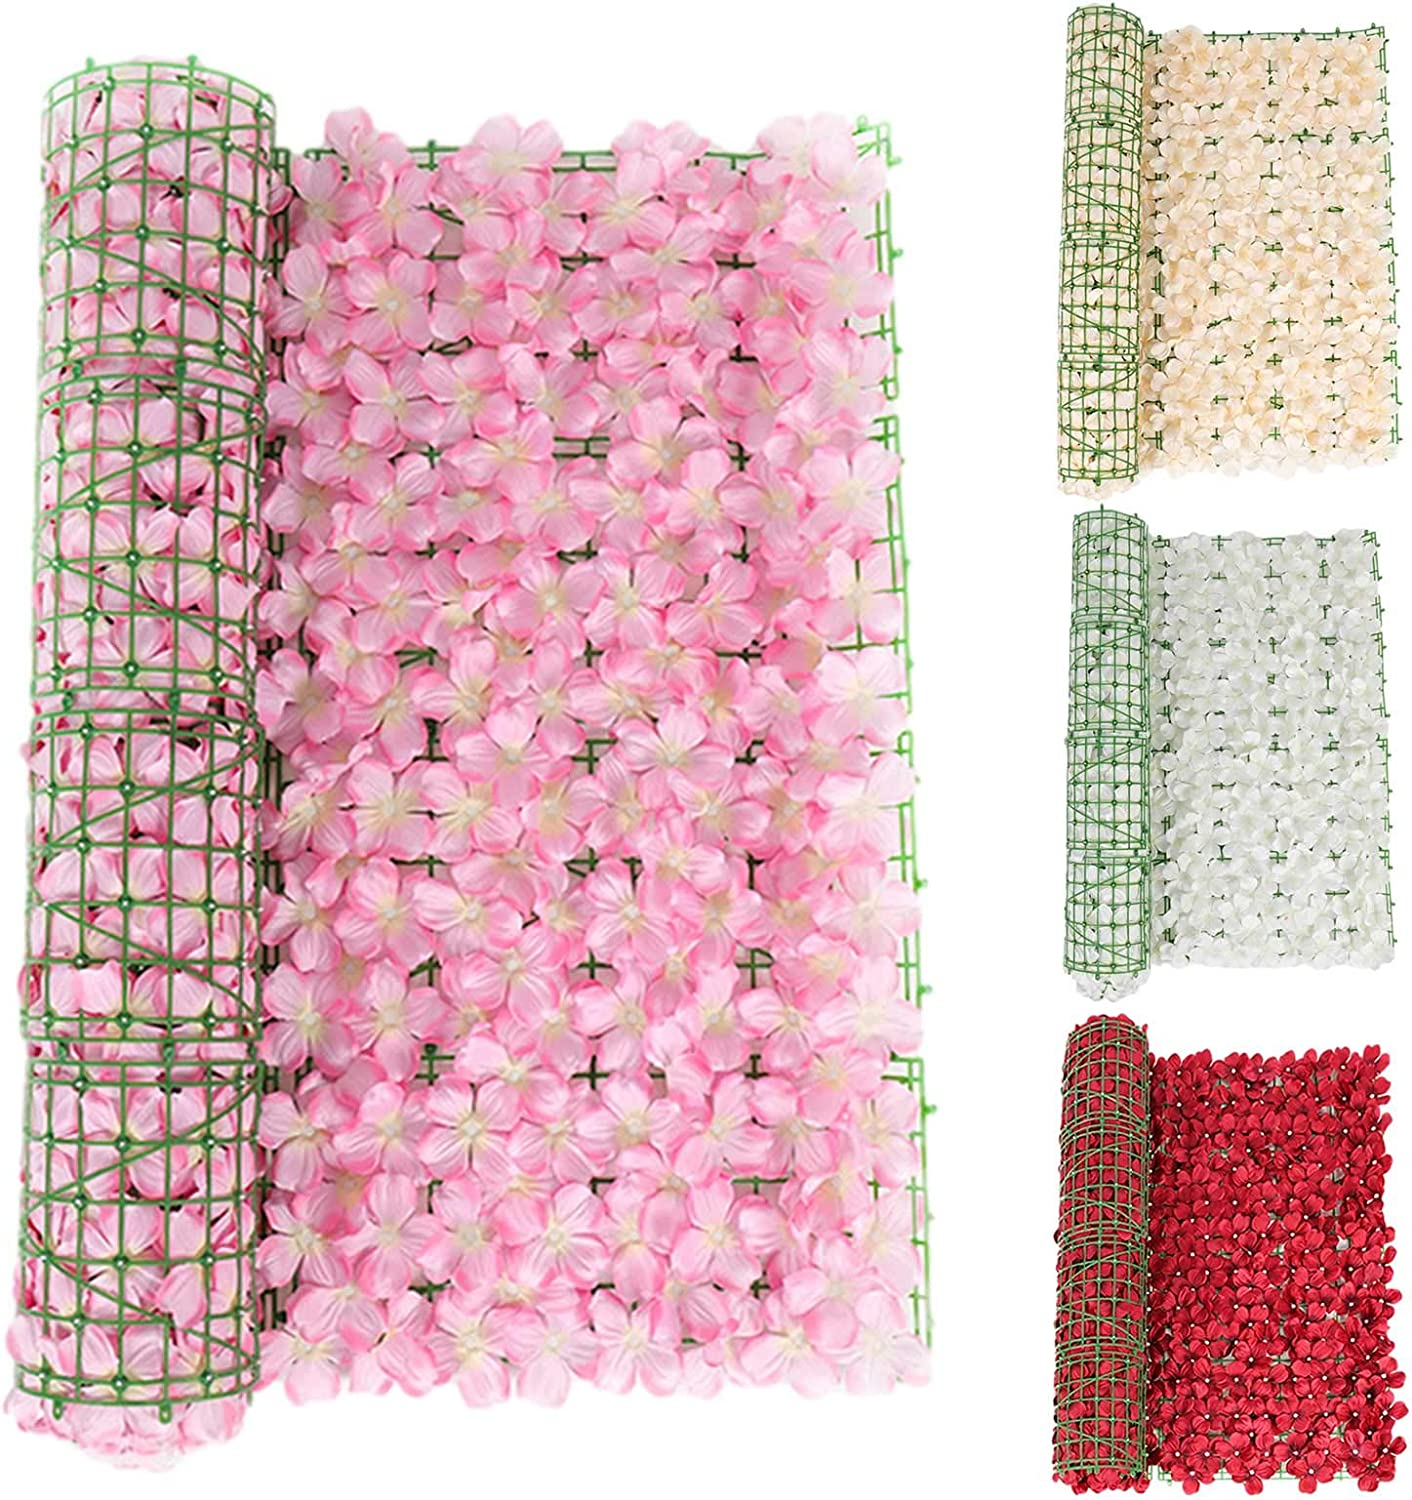 Artificial Hedge Gifts Fence Screening supreme Flowers Ivy Sc with